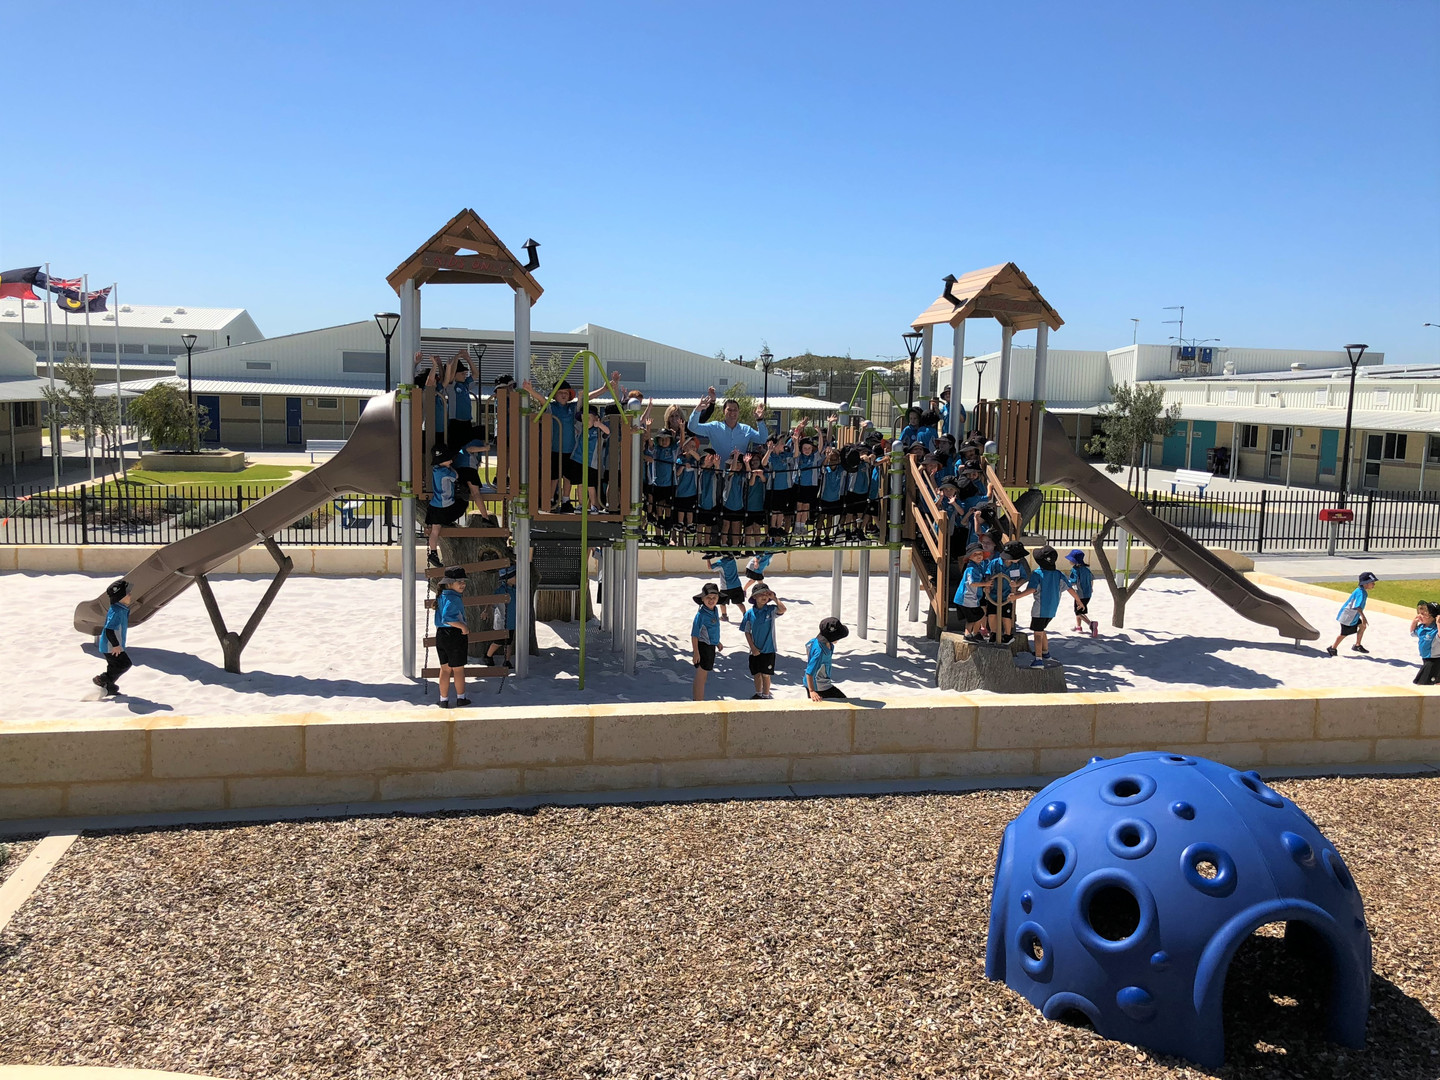 Cozy Dome and Treehouse Playground. School Play Supplier.